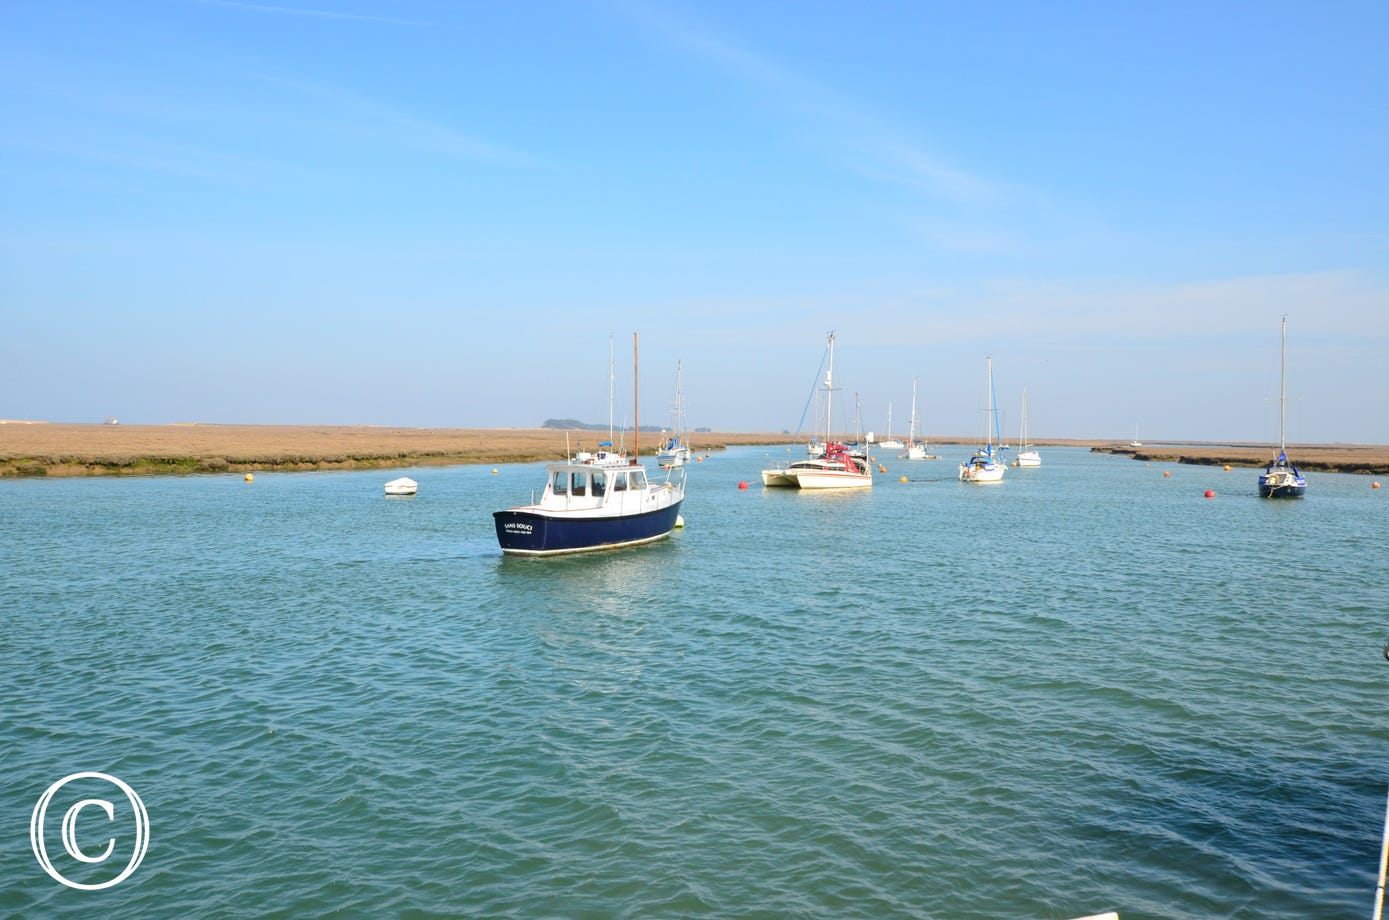 A lovely view of Wells Quay